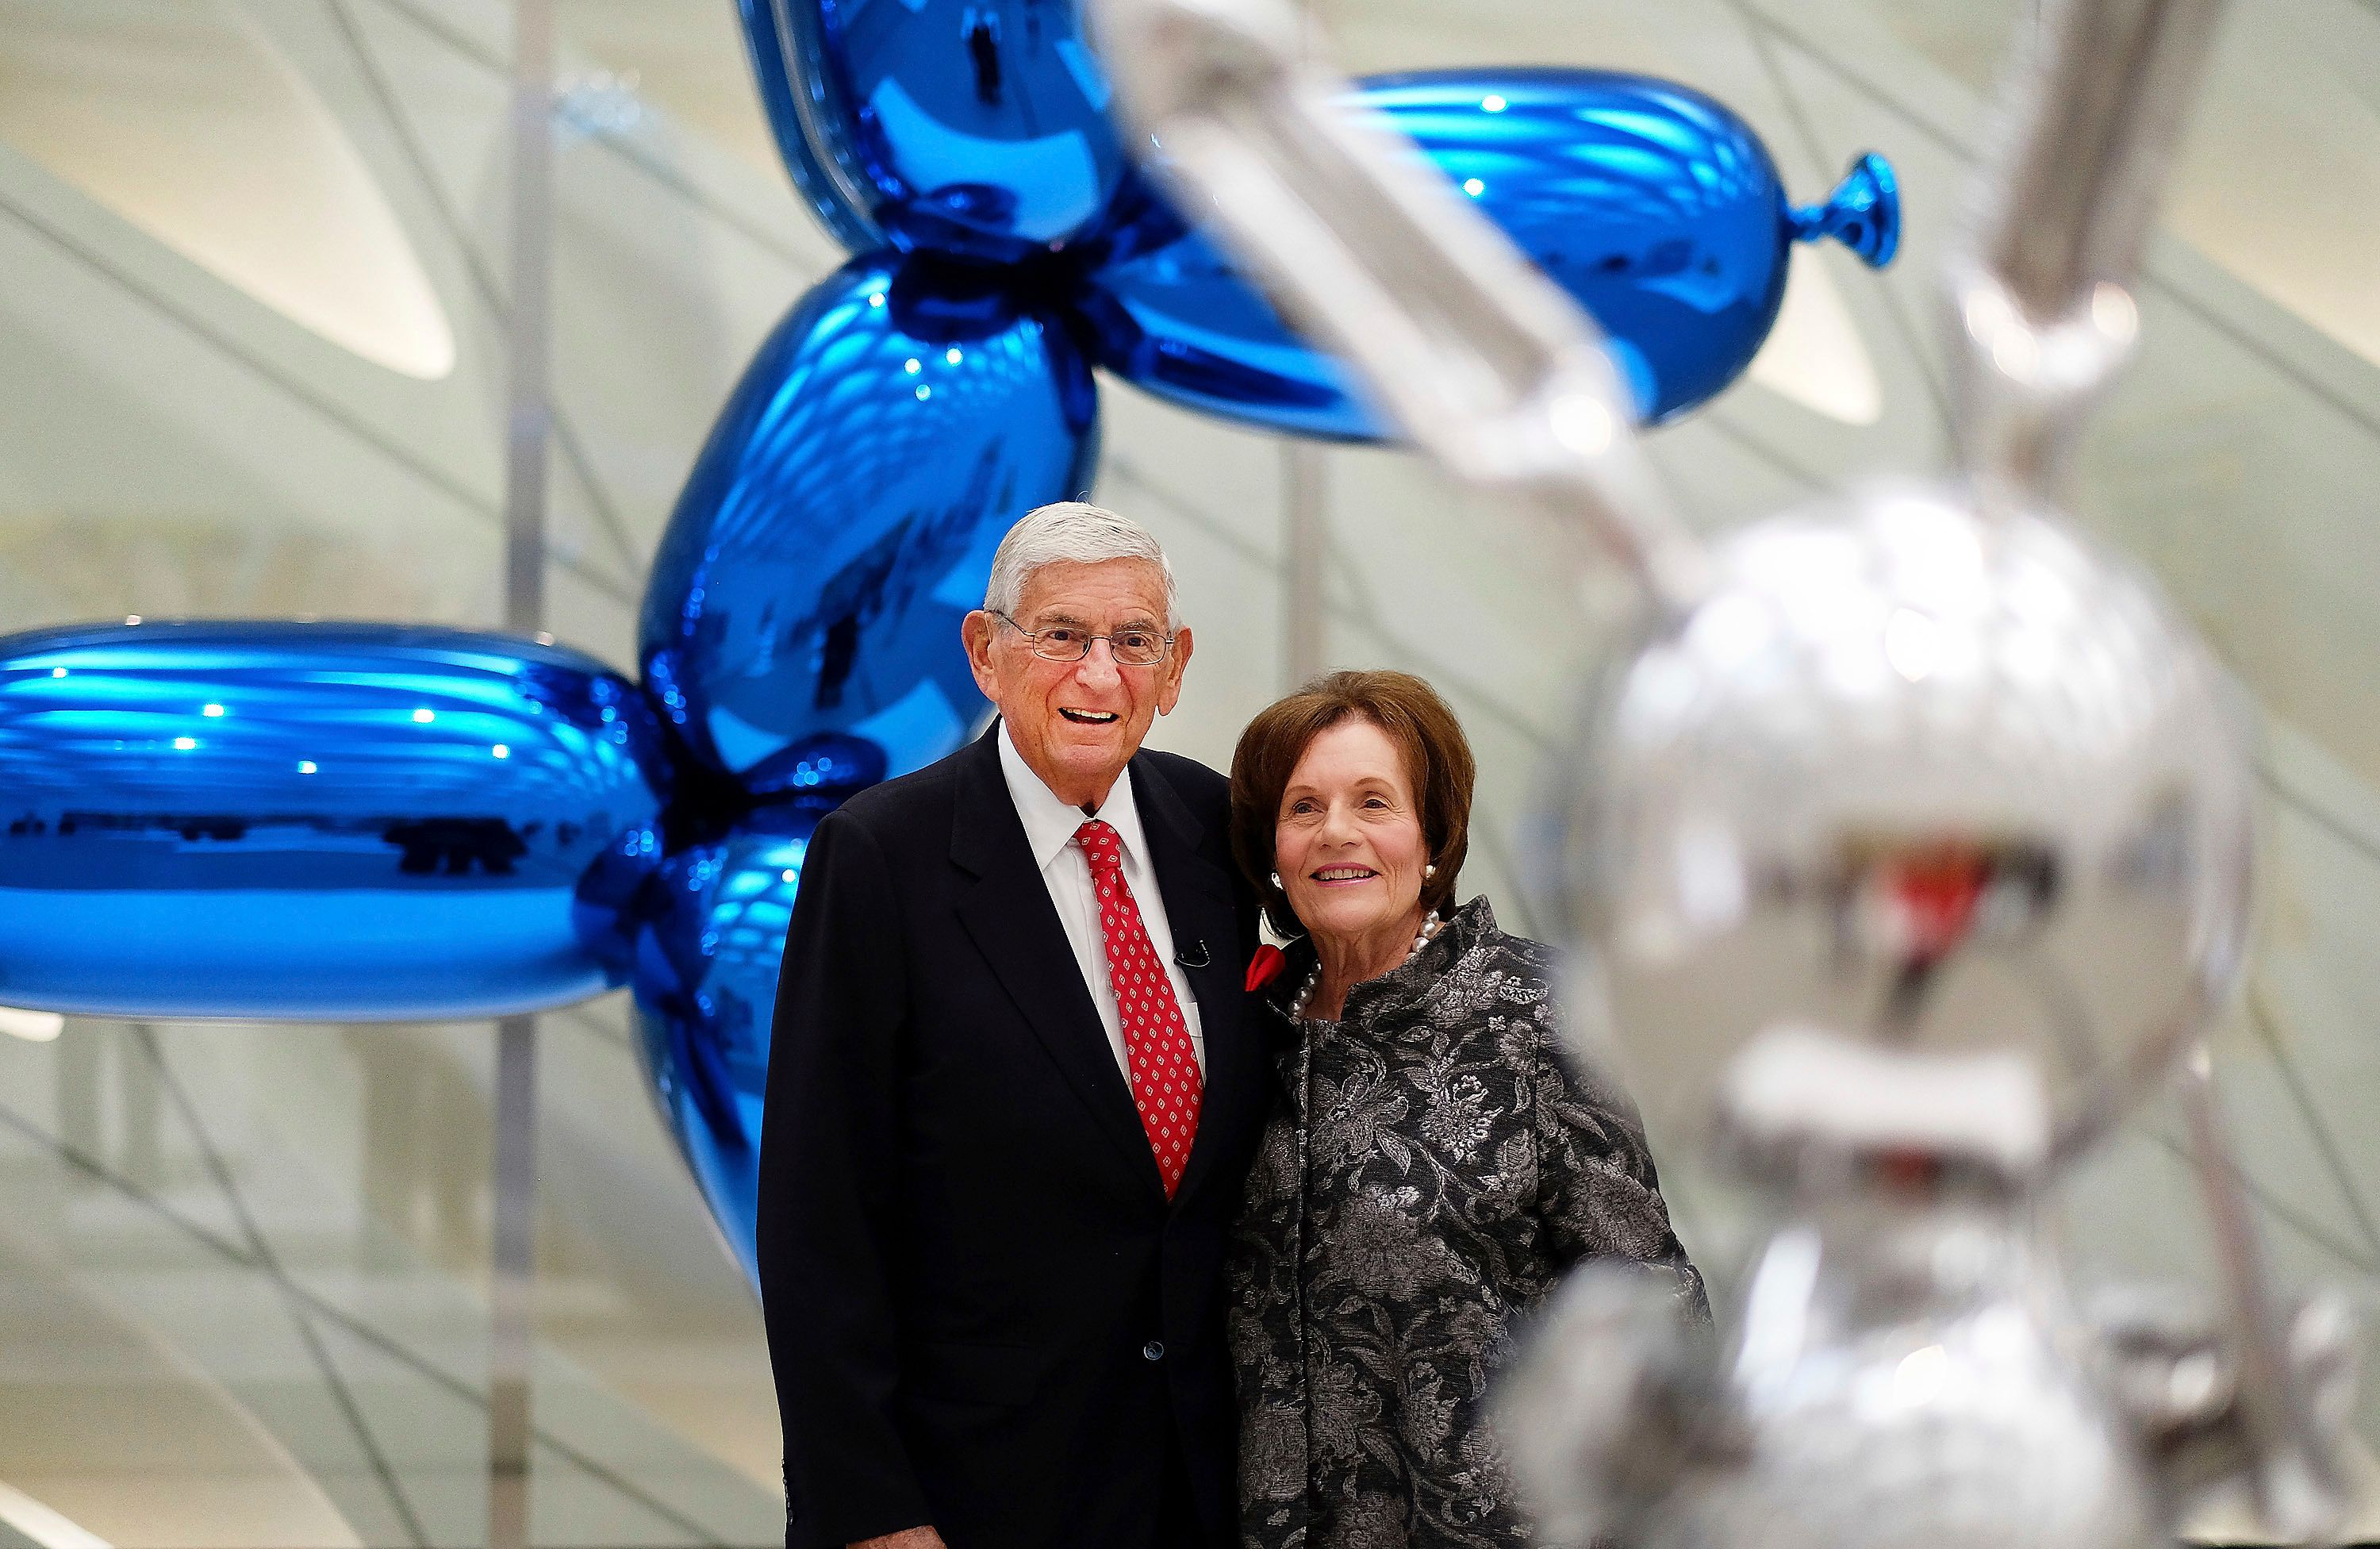 In this Sept. 16, 2015 file photo, Eli Broad and his wife, Edythe, stand for a photo amid Jeff Koons sculptures at his new mu